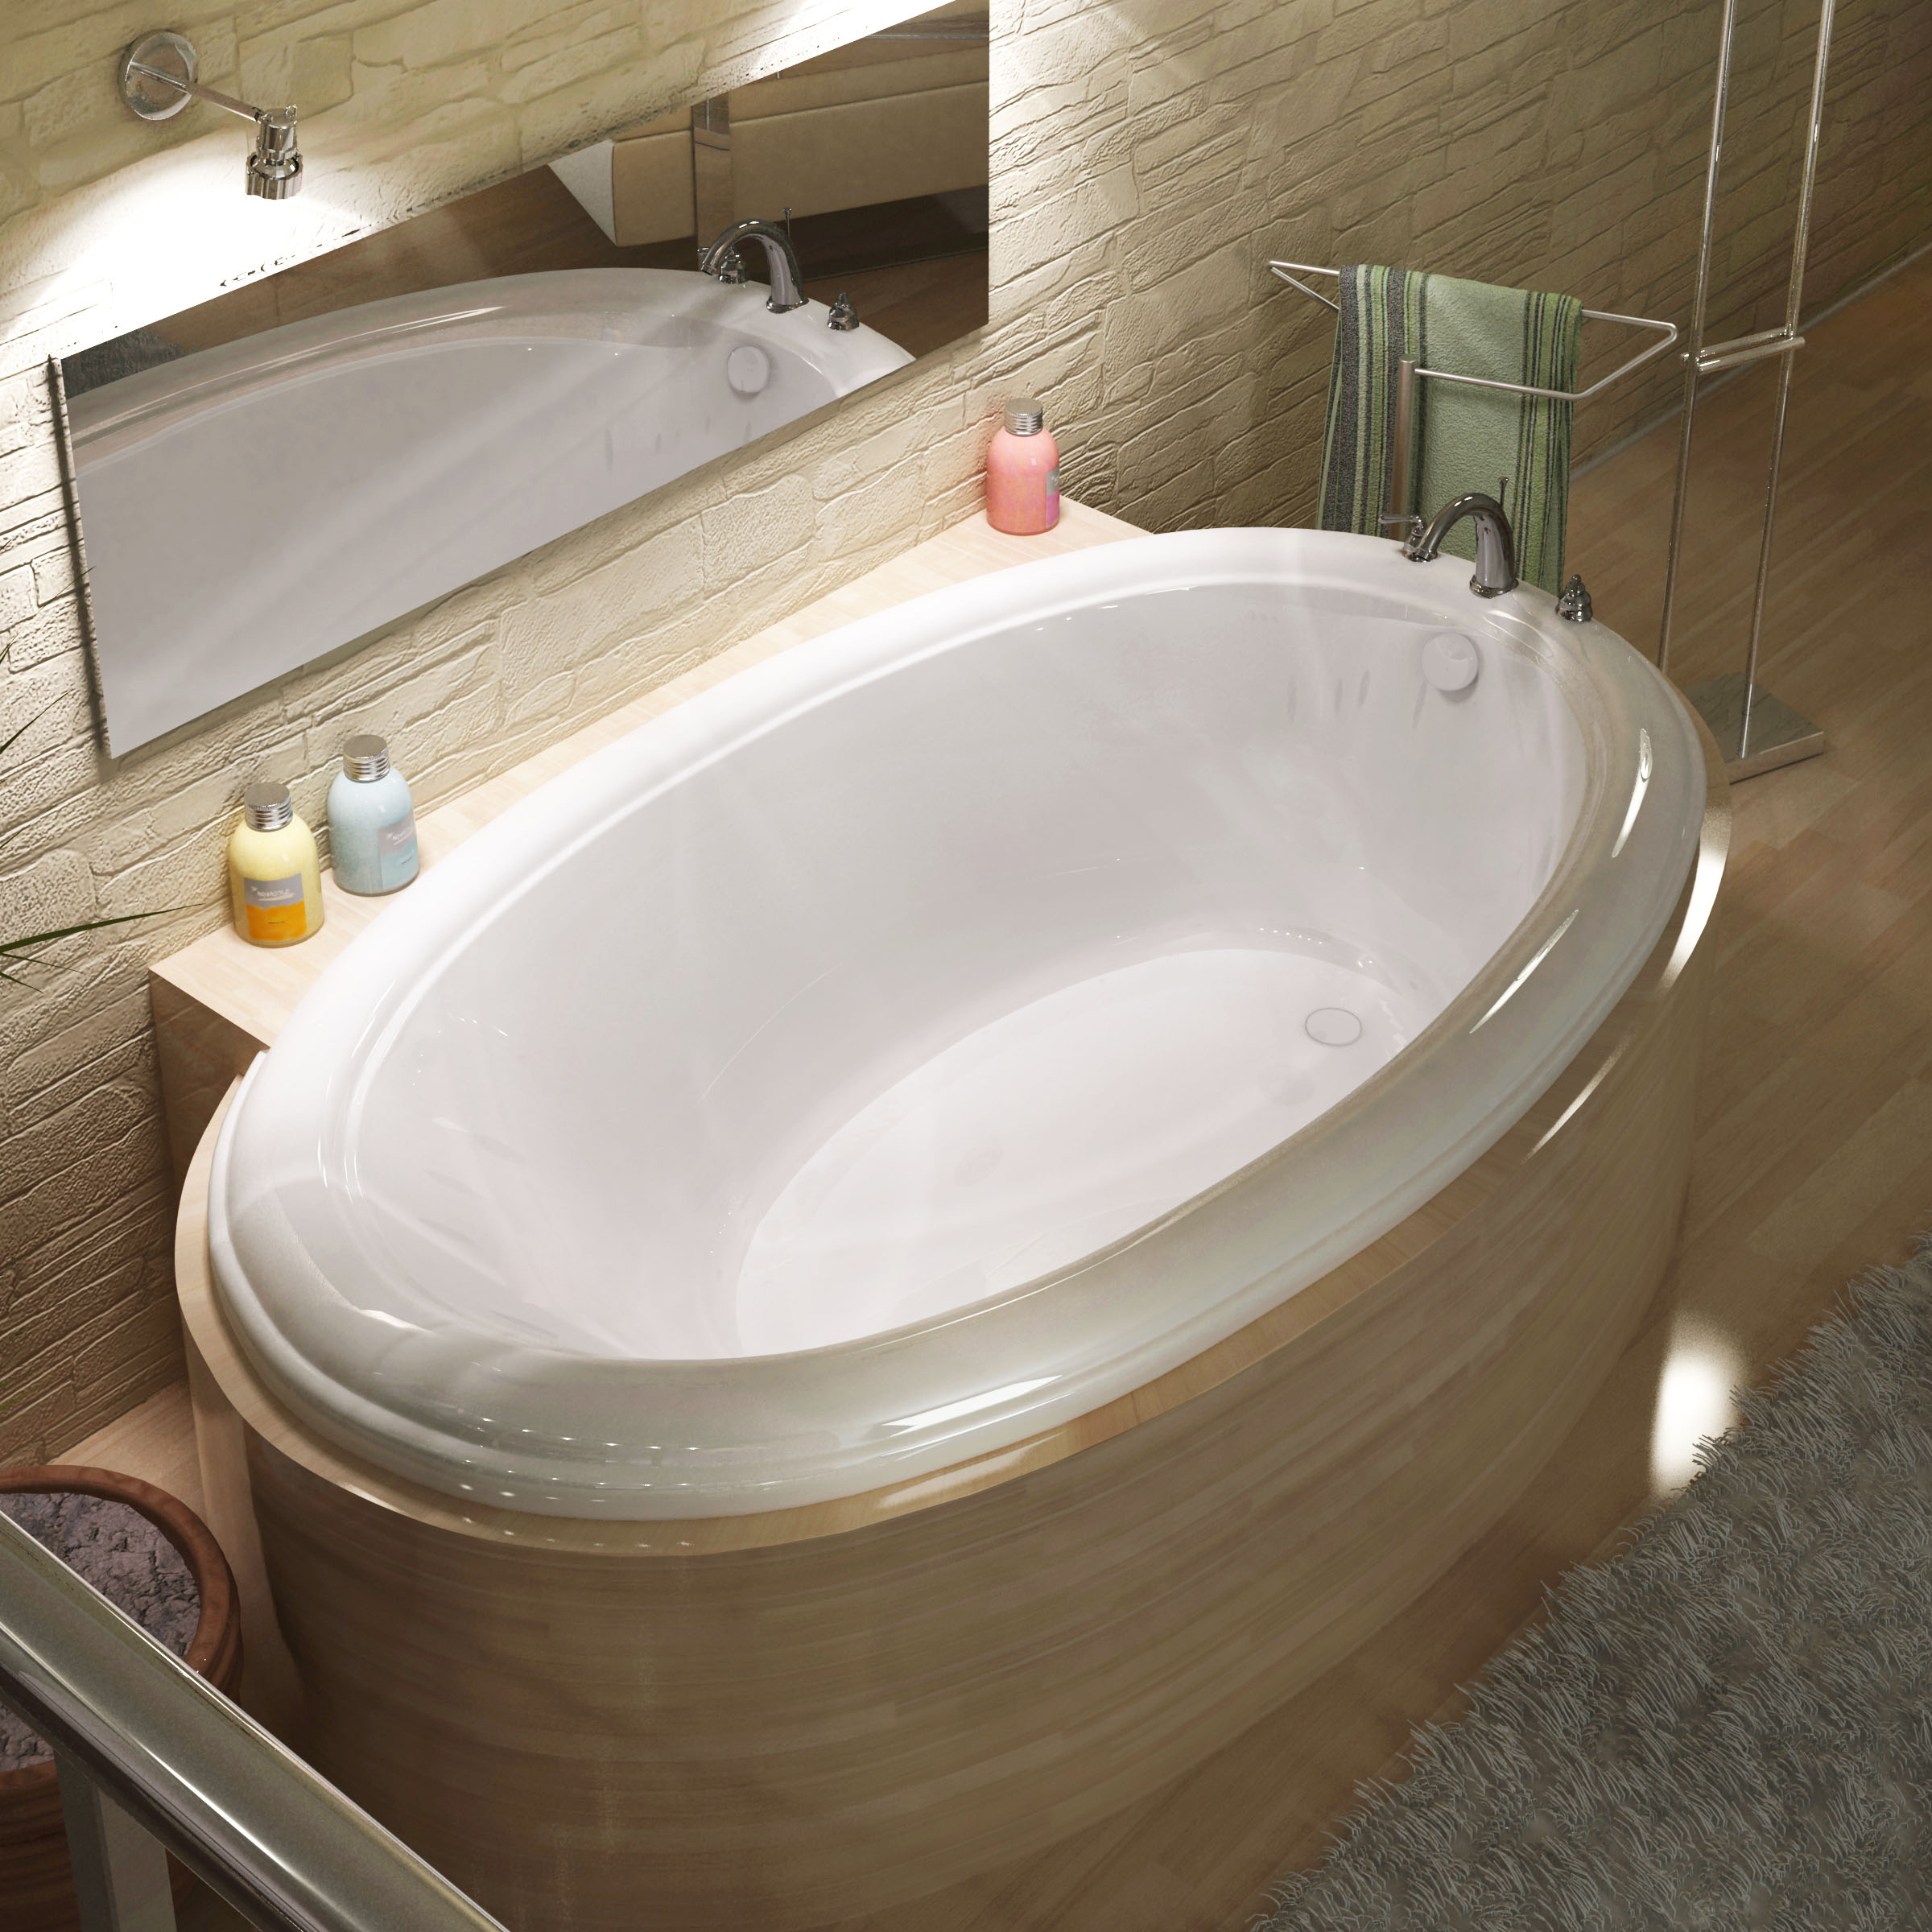 oceania baths r skirts data bathtub enlarge front bauto lr freestanding right sfr suite and sided x